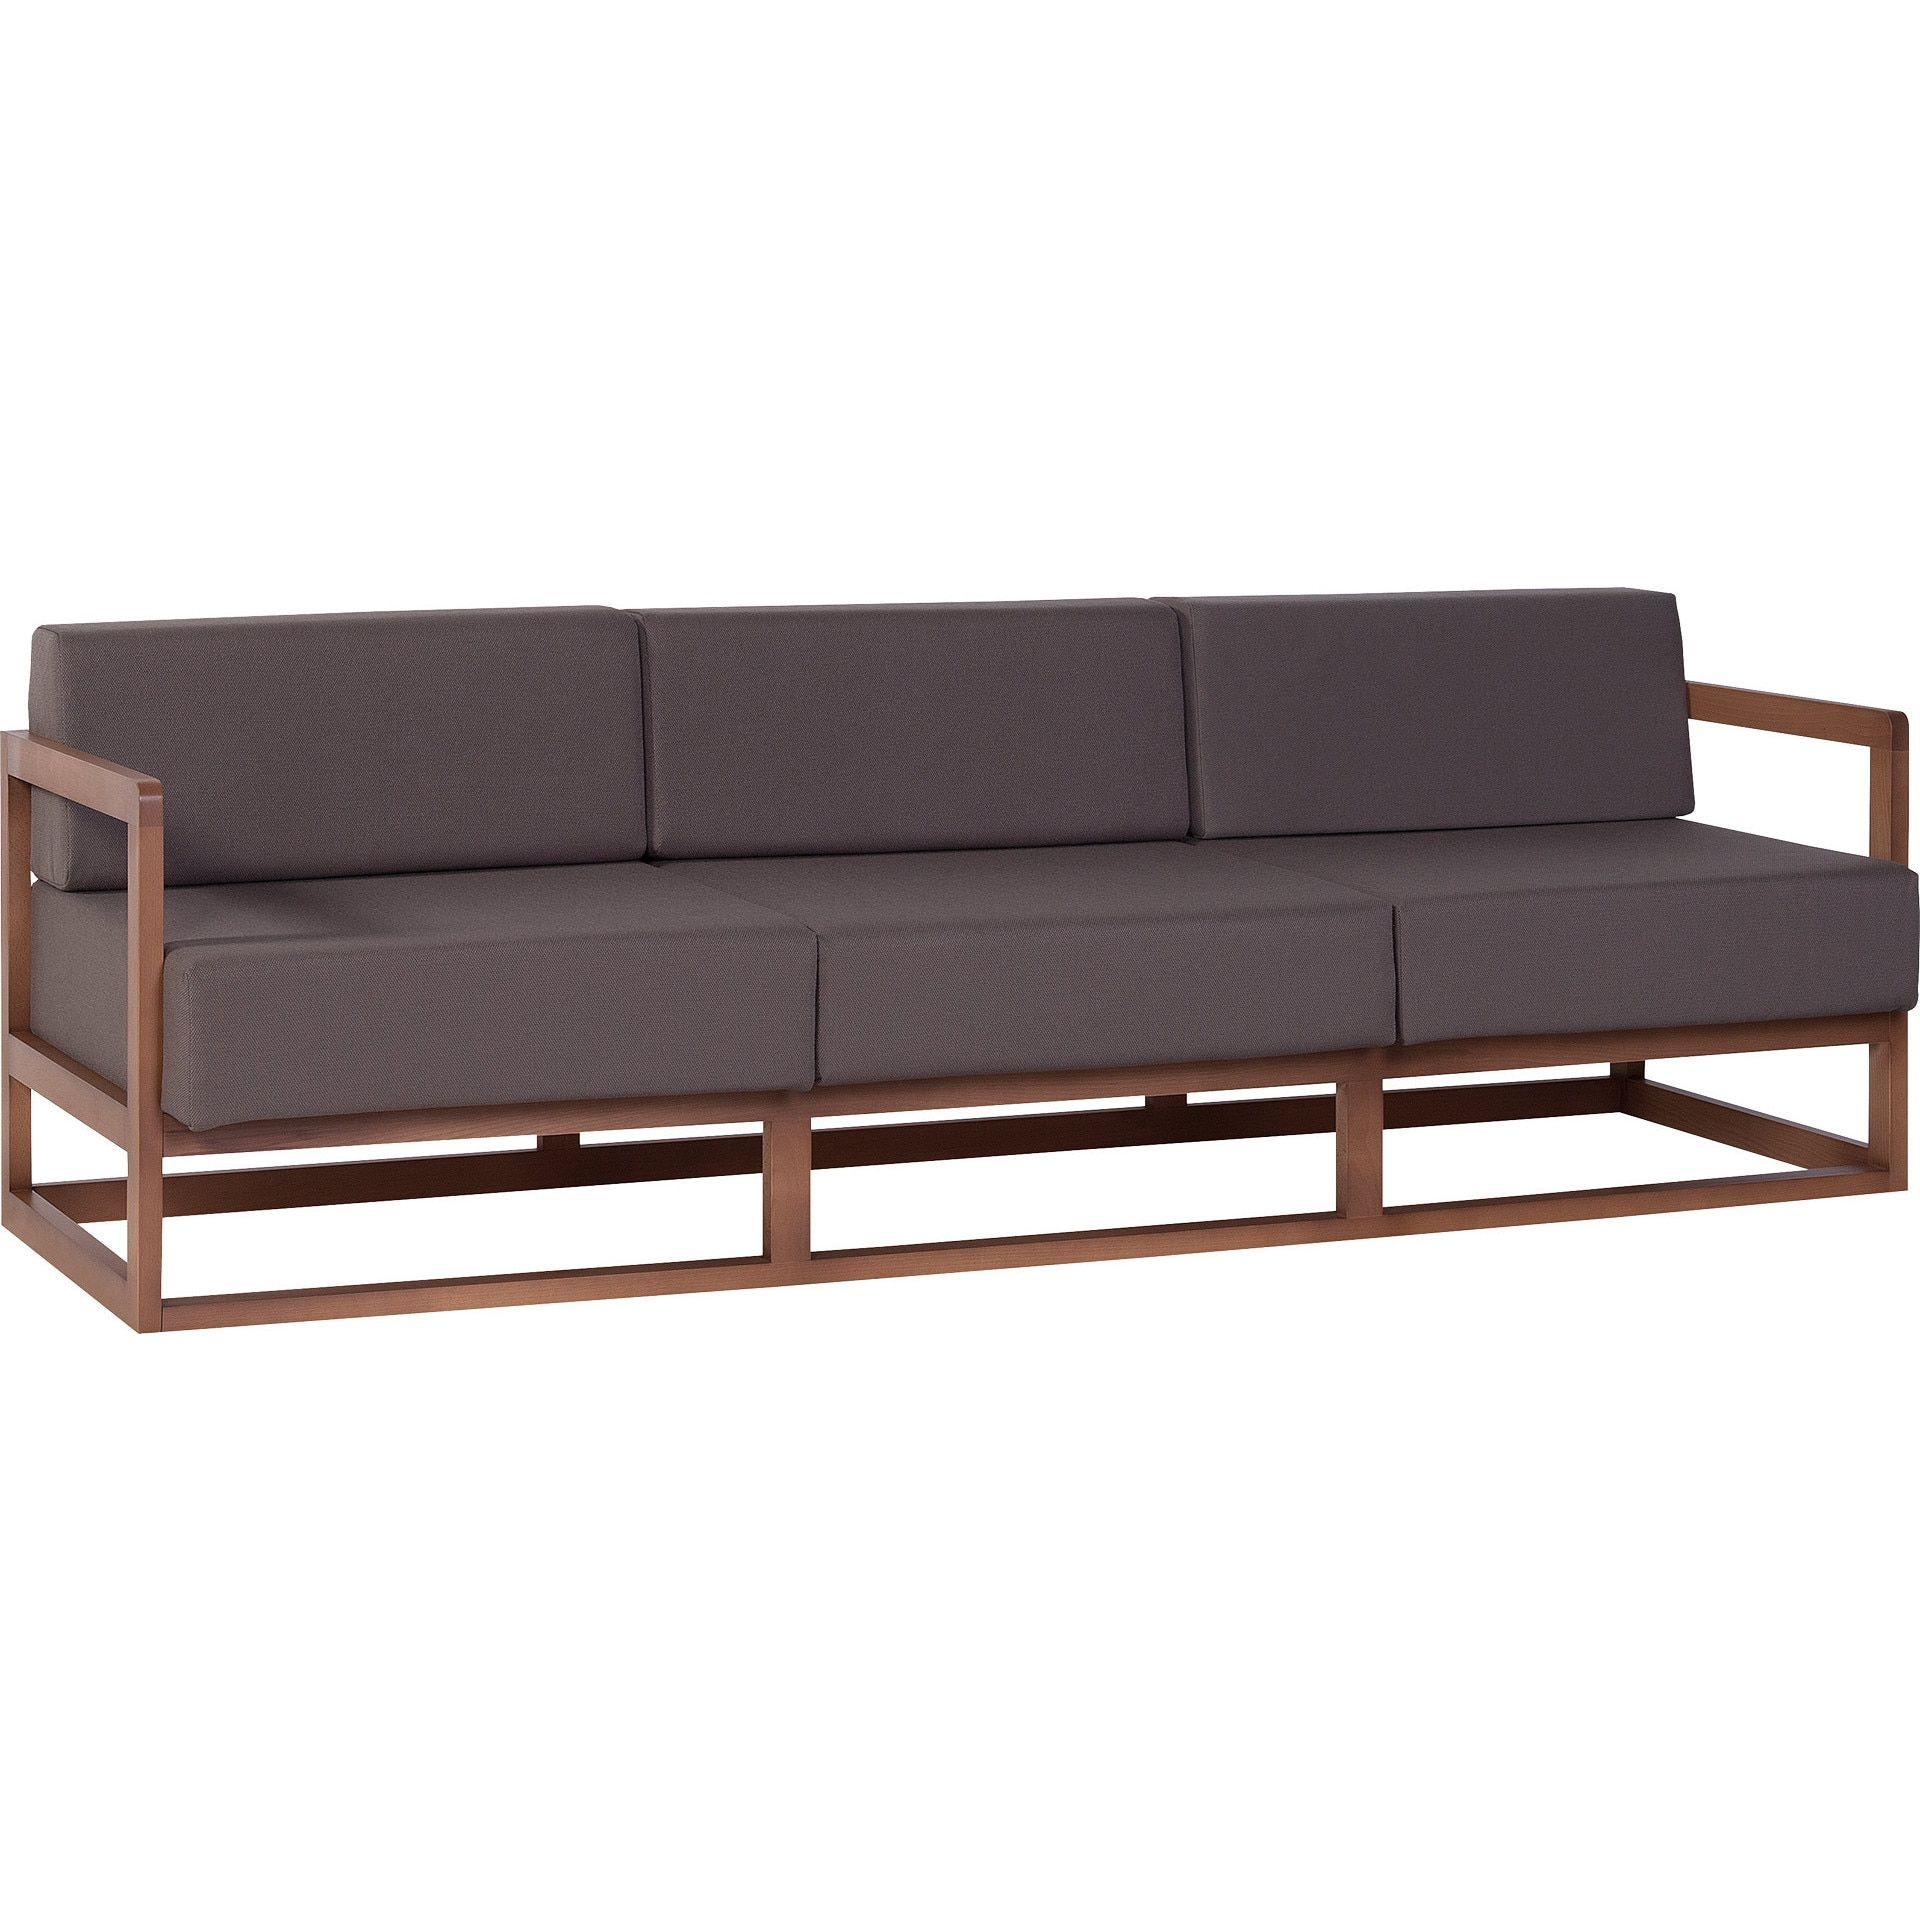 Voelkel Mio Collection Mid century Modern Brown Sofa Voelkel Mio